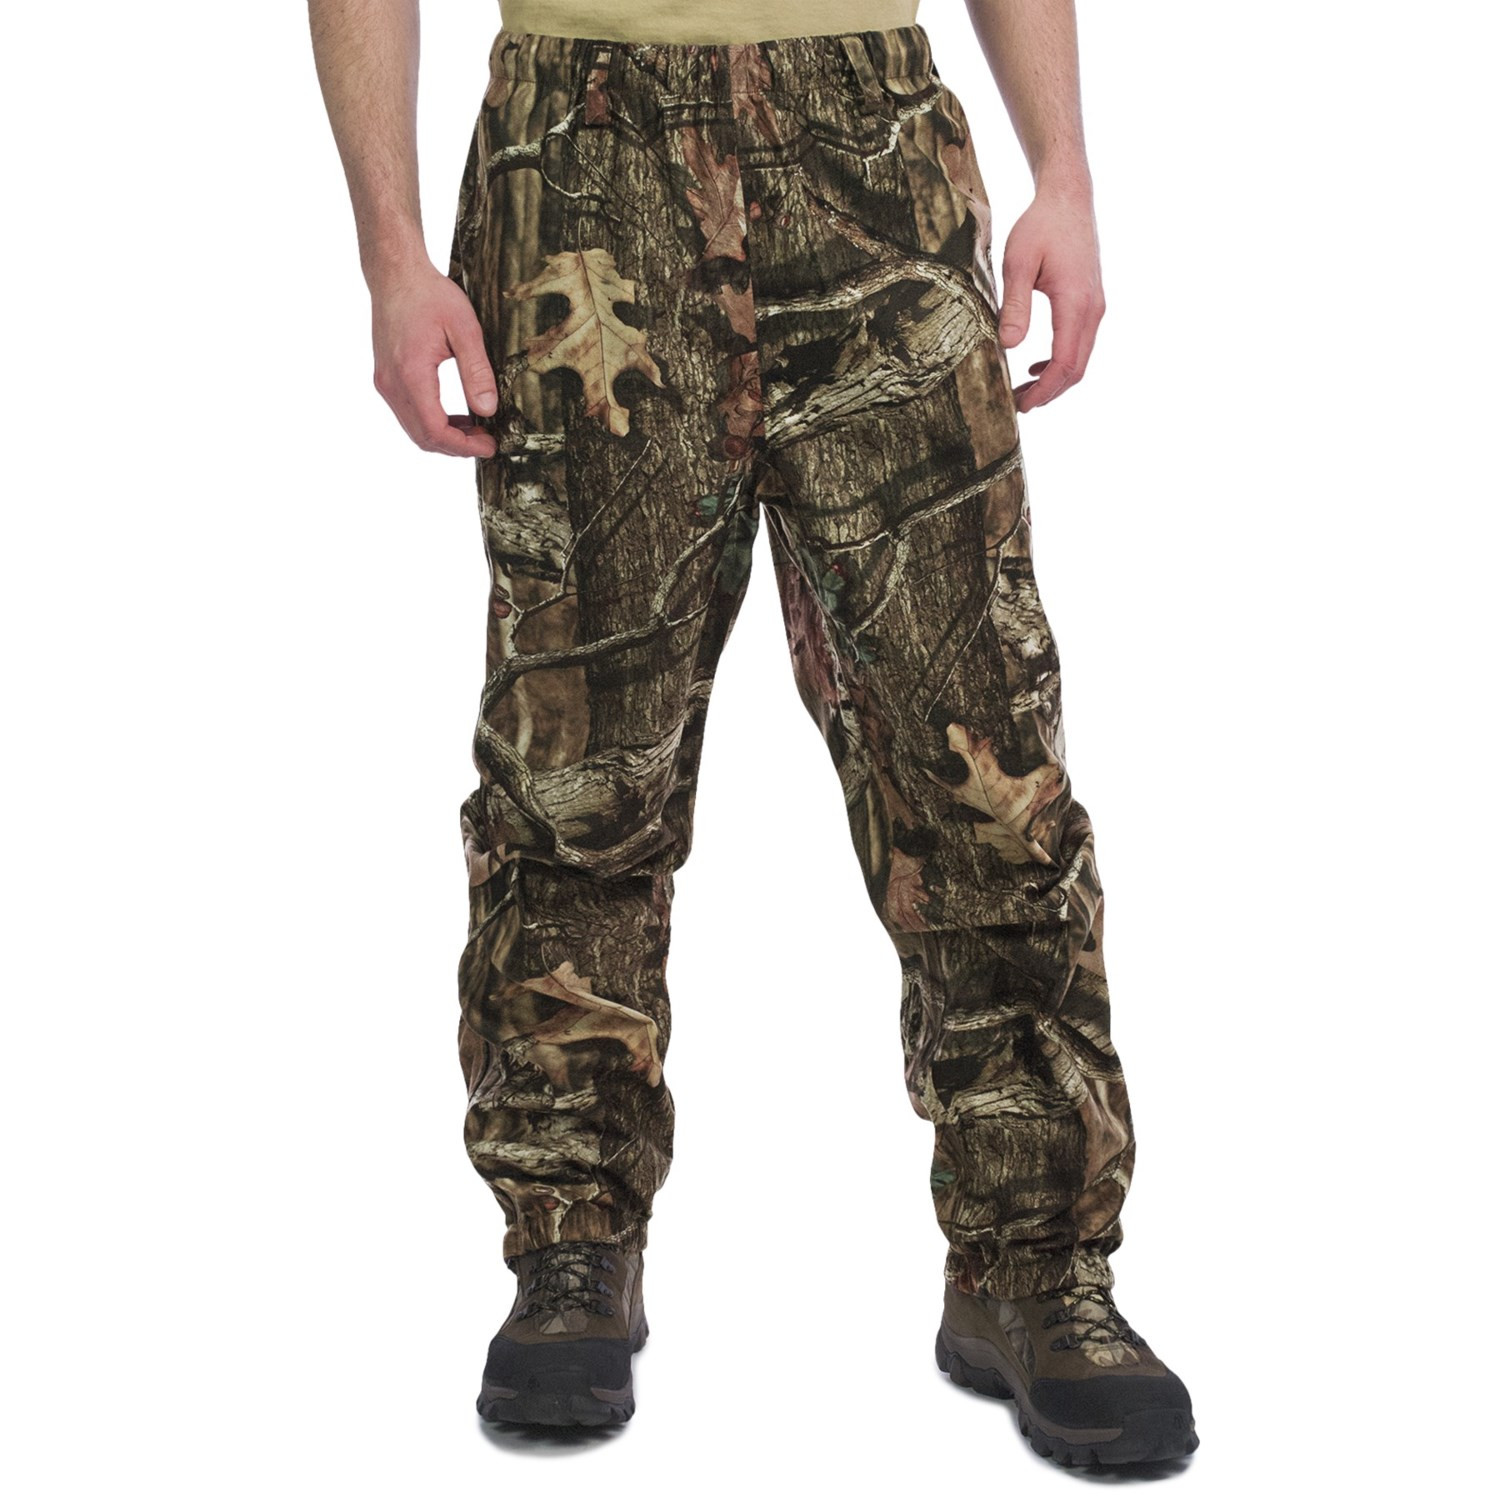 Camouflage mossy camo hunting camo camouflage pants camoflauge - Mossy Oak Infinity Break Up Apps Directories